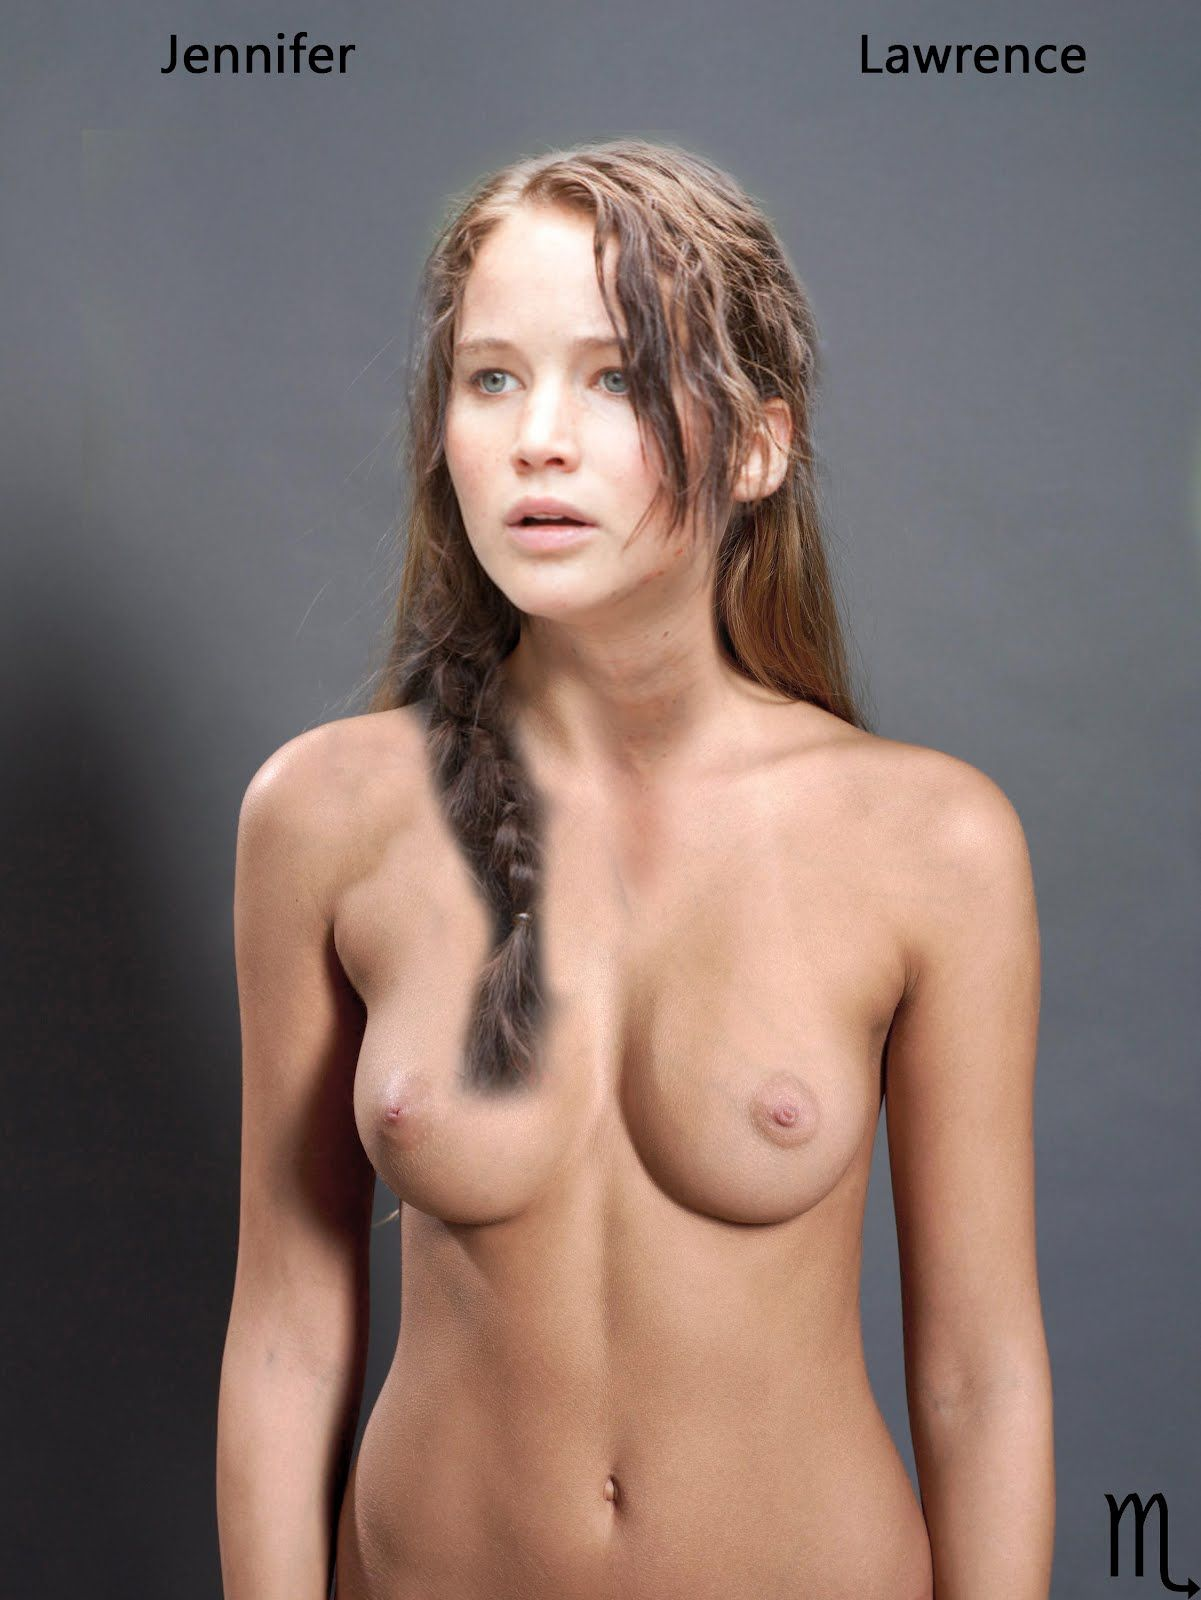 The Fappening 2014 Jennifer Lawrence Kate Upton And More Leaked Celeb Nudes